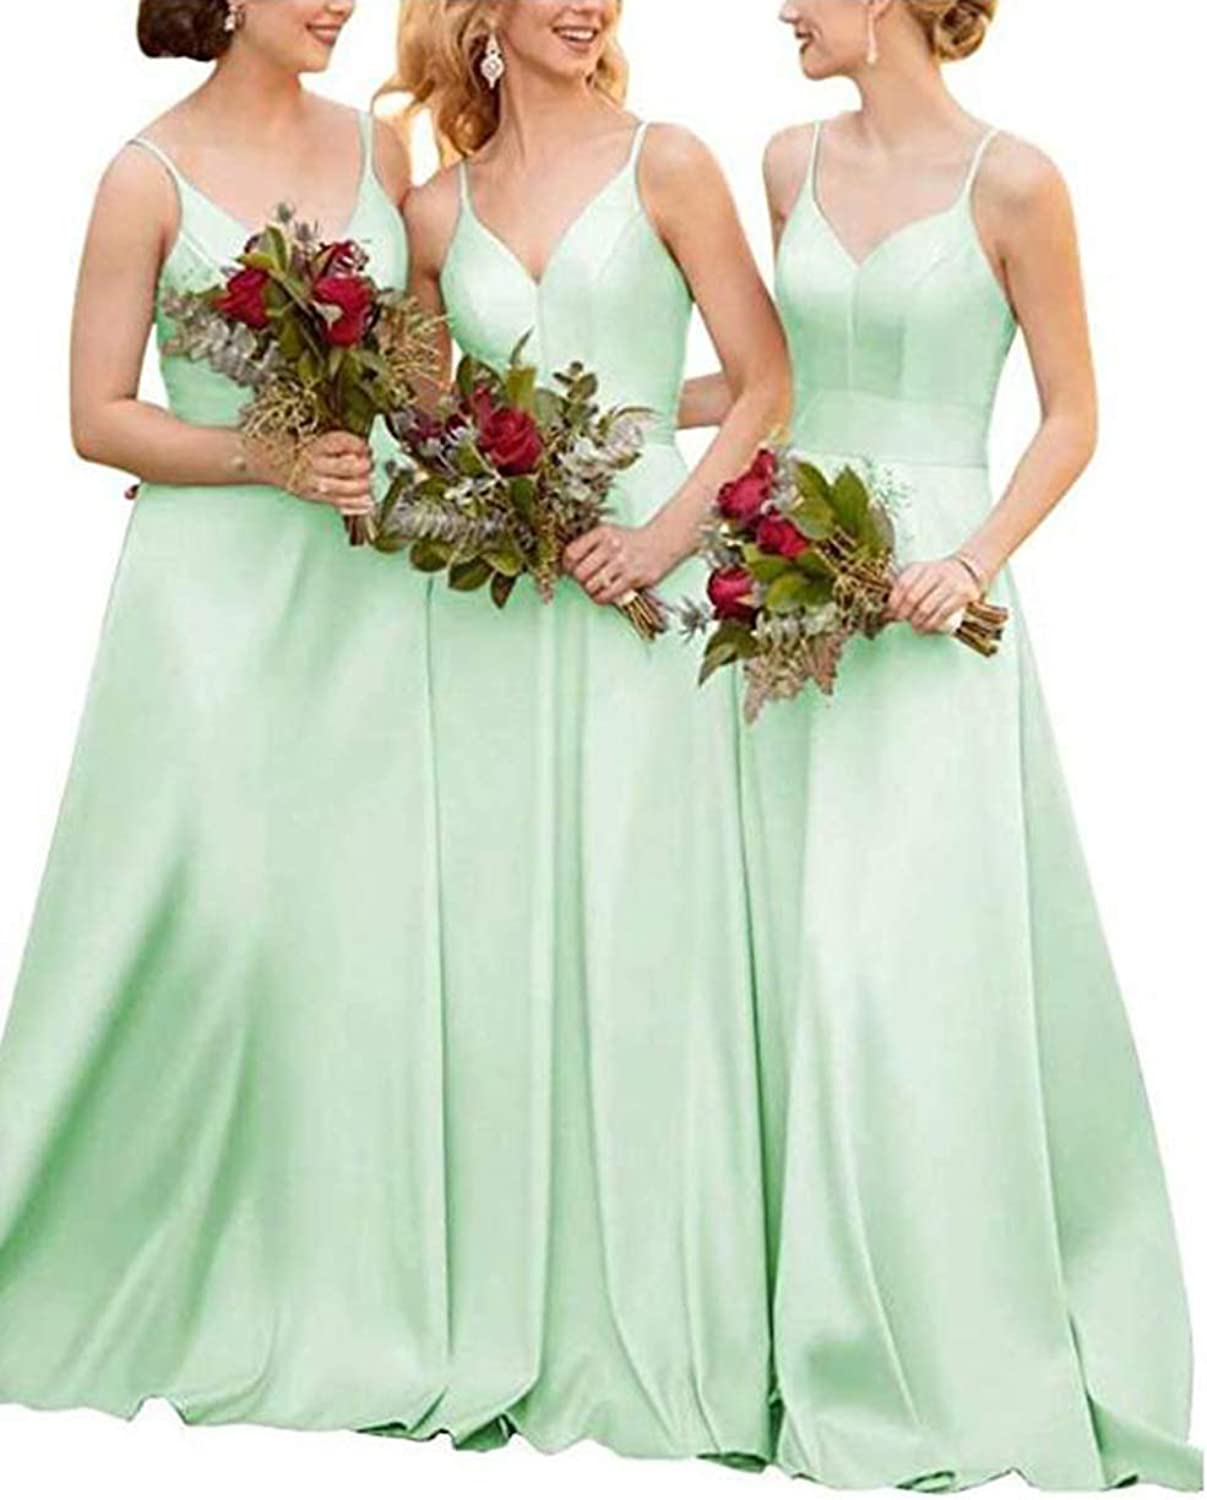 Alilith.Z Sexy Spaghetti Strap Satin Bridesmaid Dresses Formal Prom Dresses Wedding Evening Party Gowns for Women